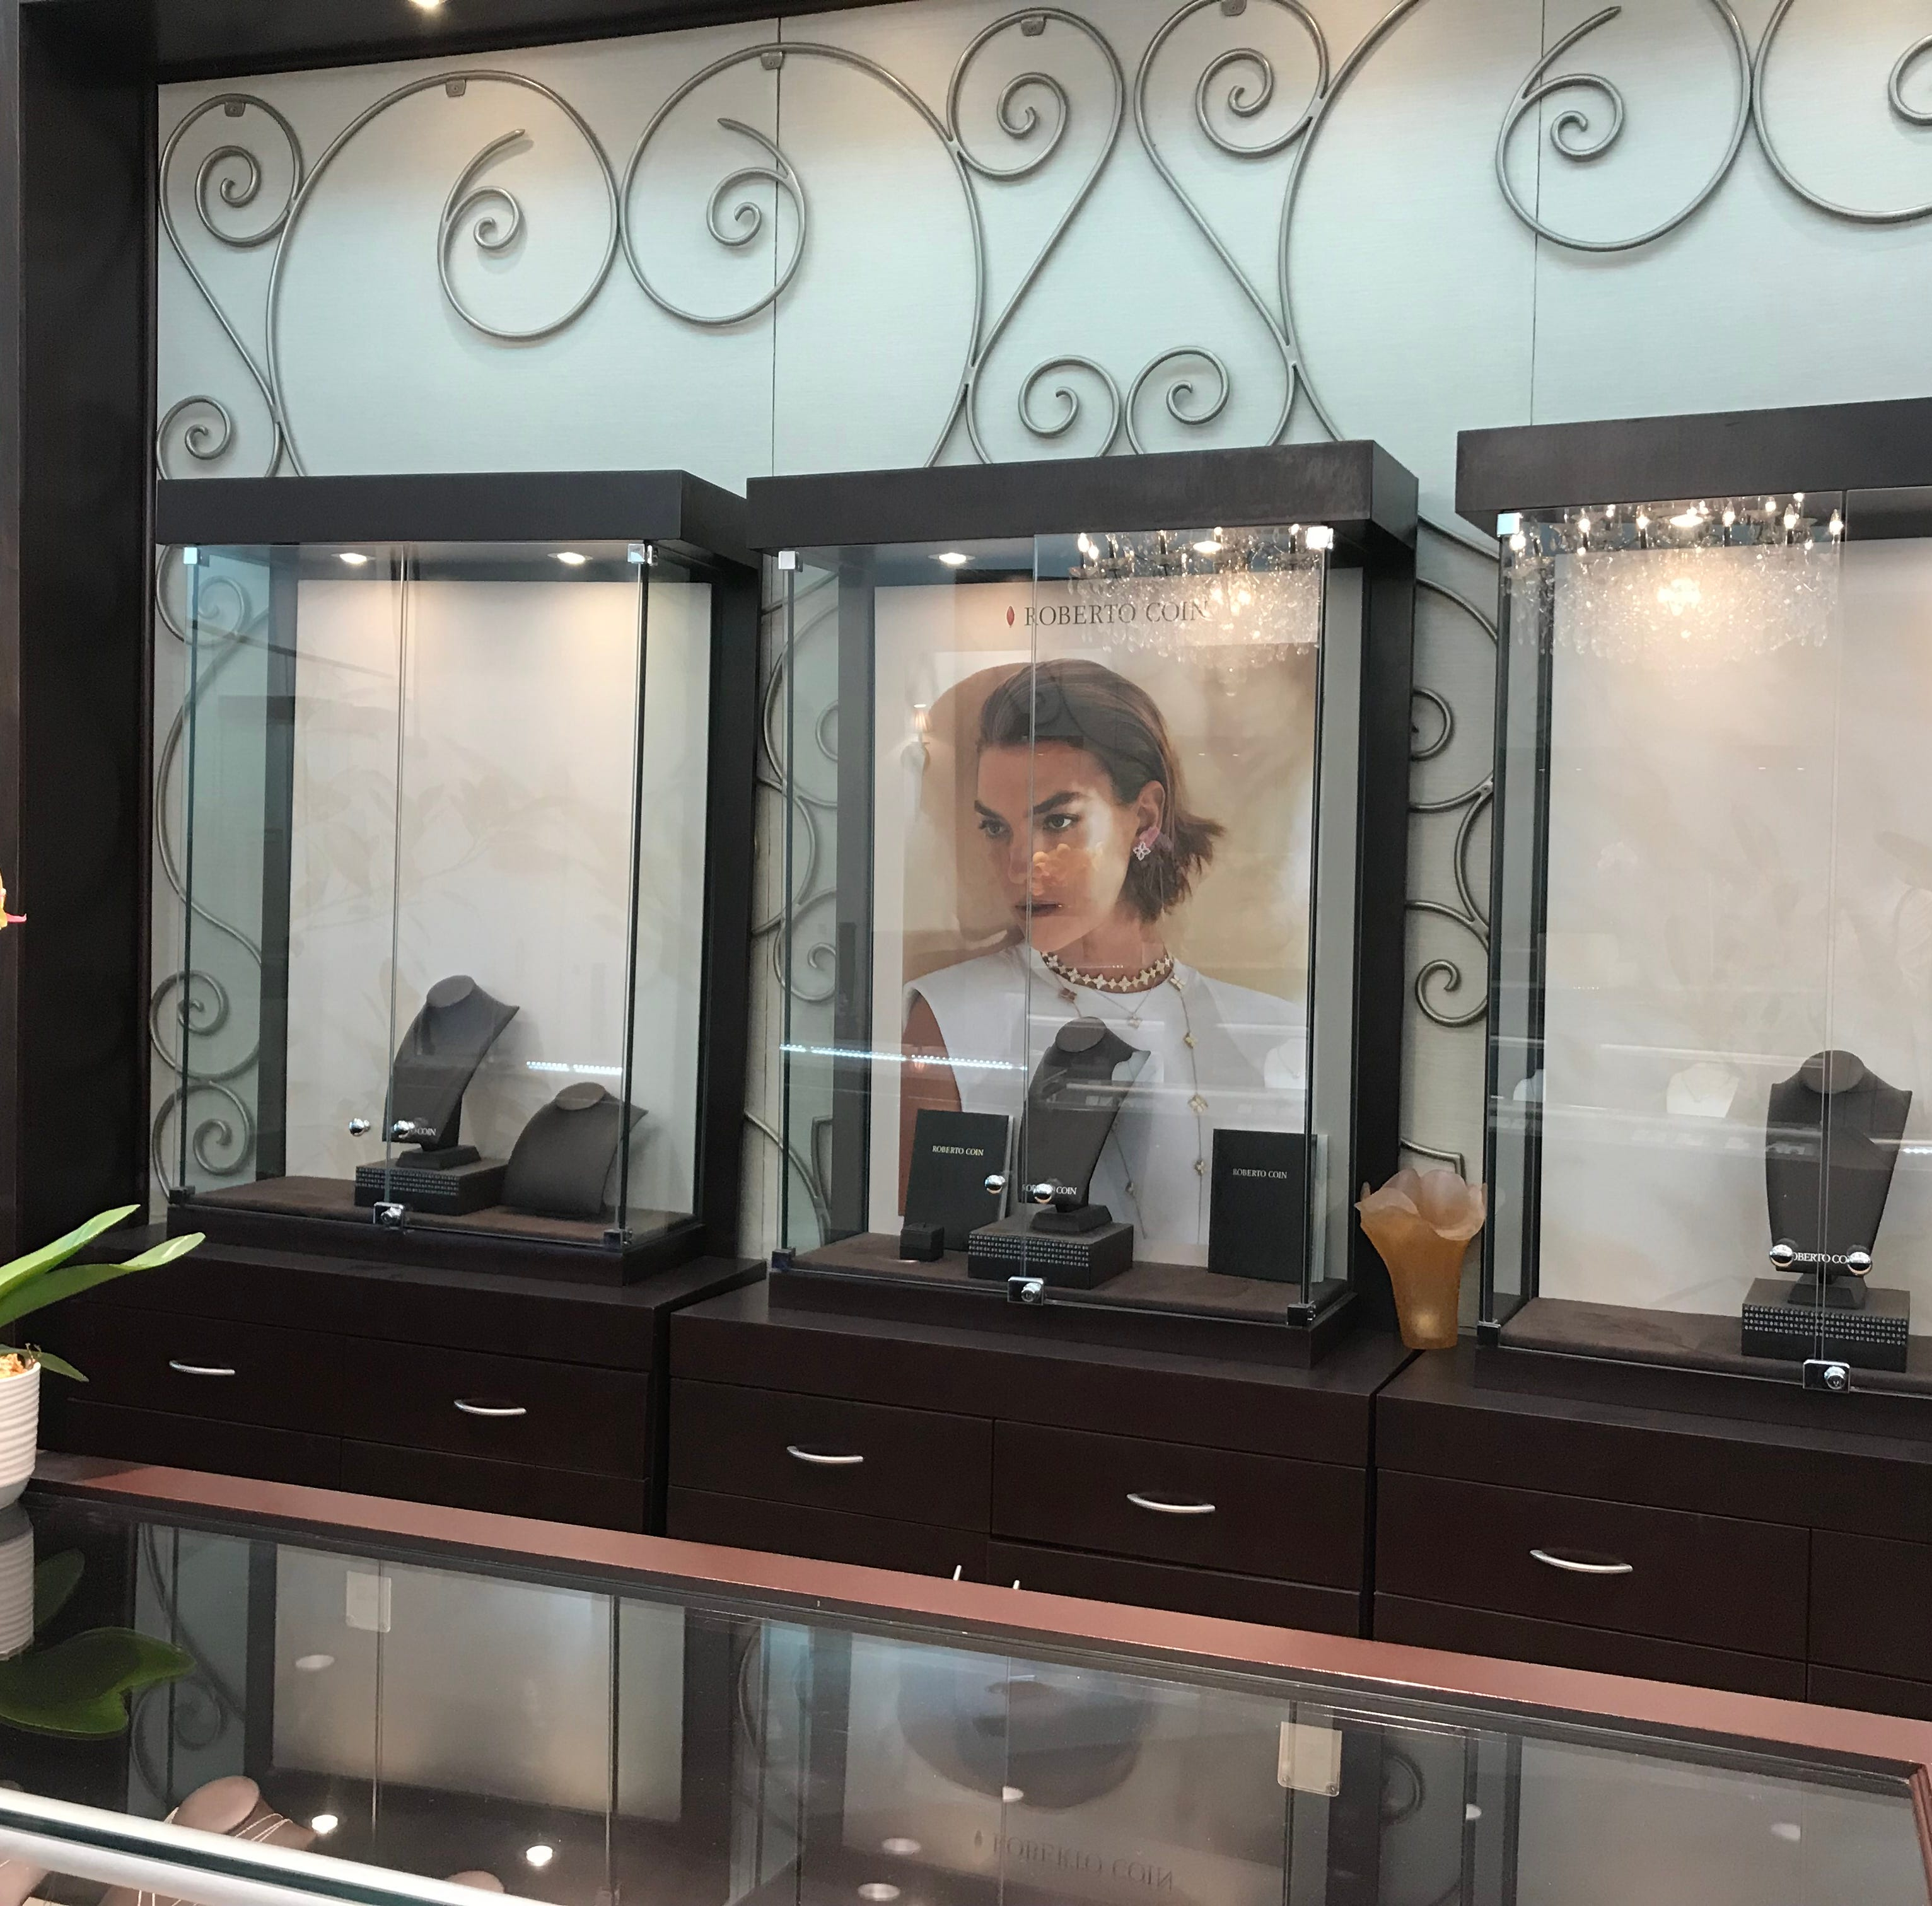 Jeweler believes thieves swiped more than $1M worth of jewelry from Fort Myers store